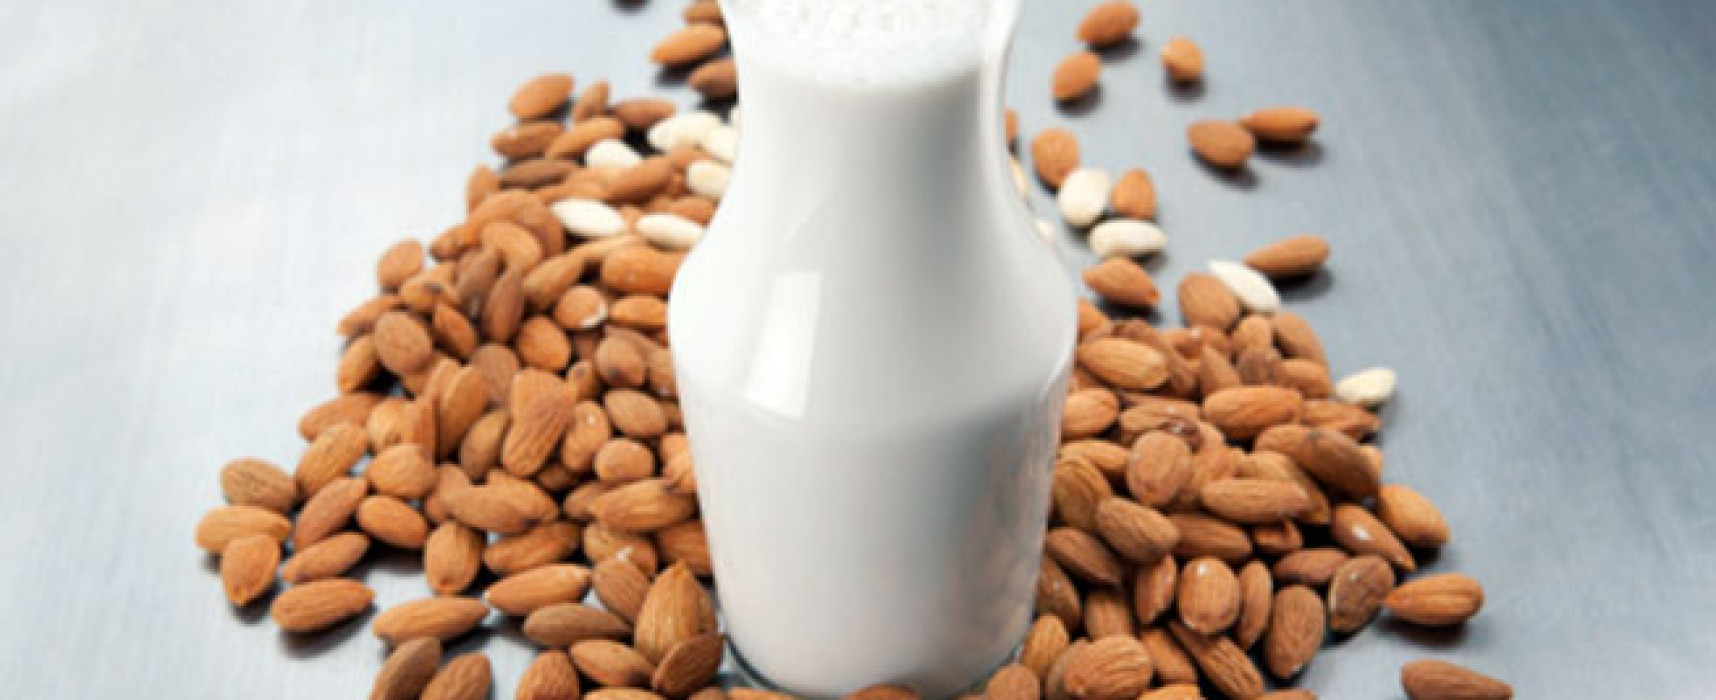 10 Checklist to Know If Almond Milk Is Suitable for You